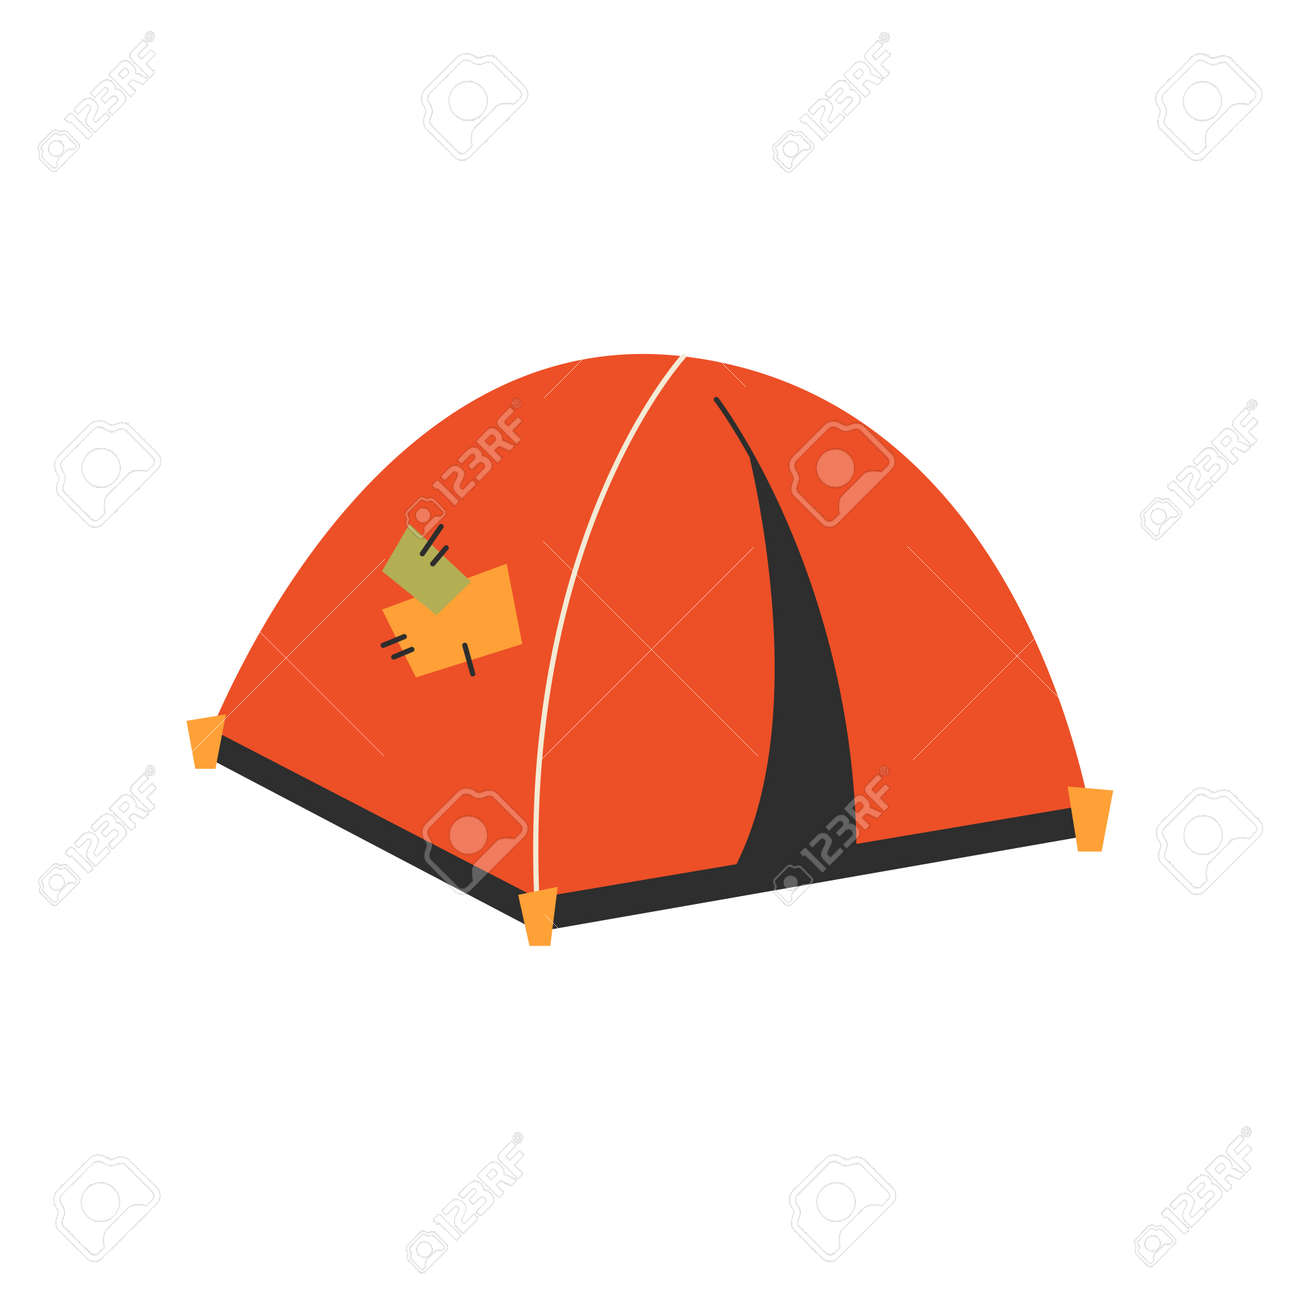 The only canvas tent on a white background. Vector illustration. - 169771744